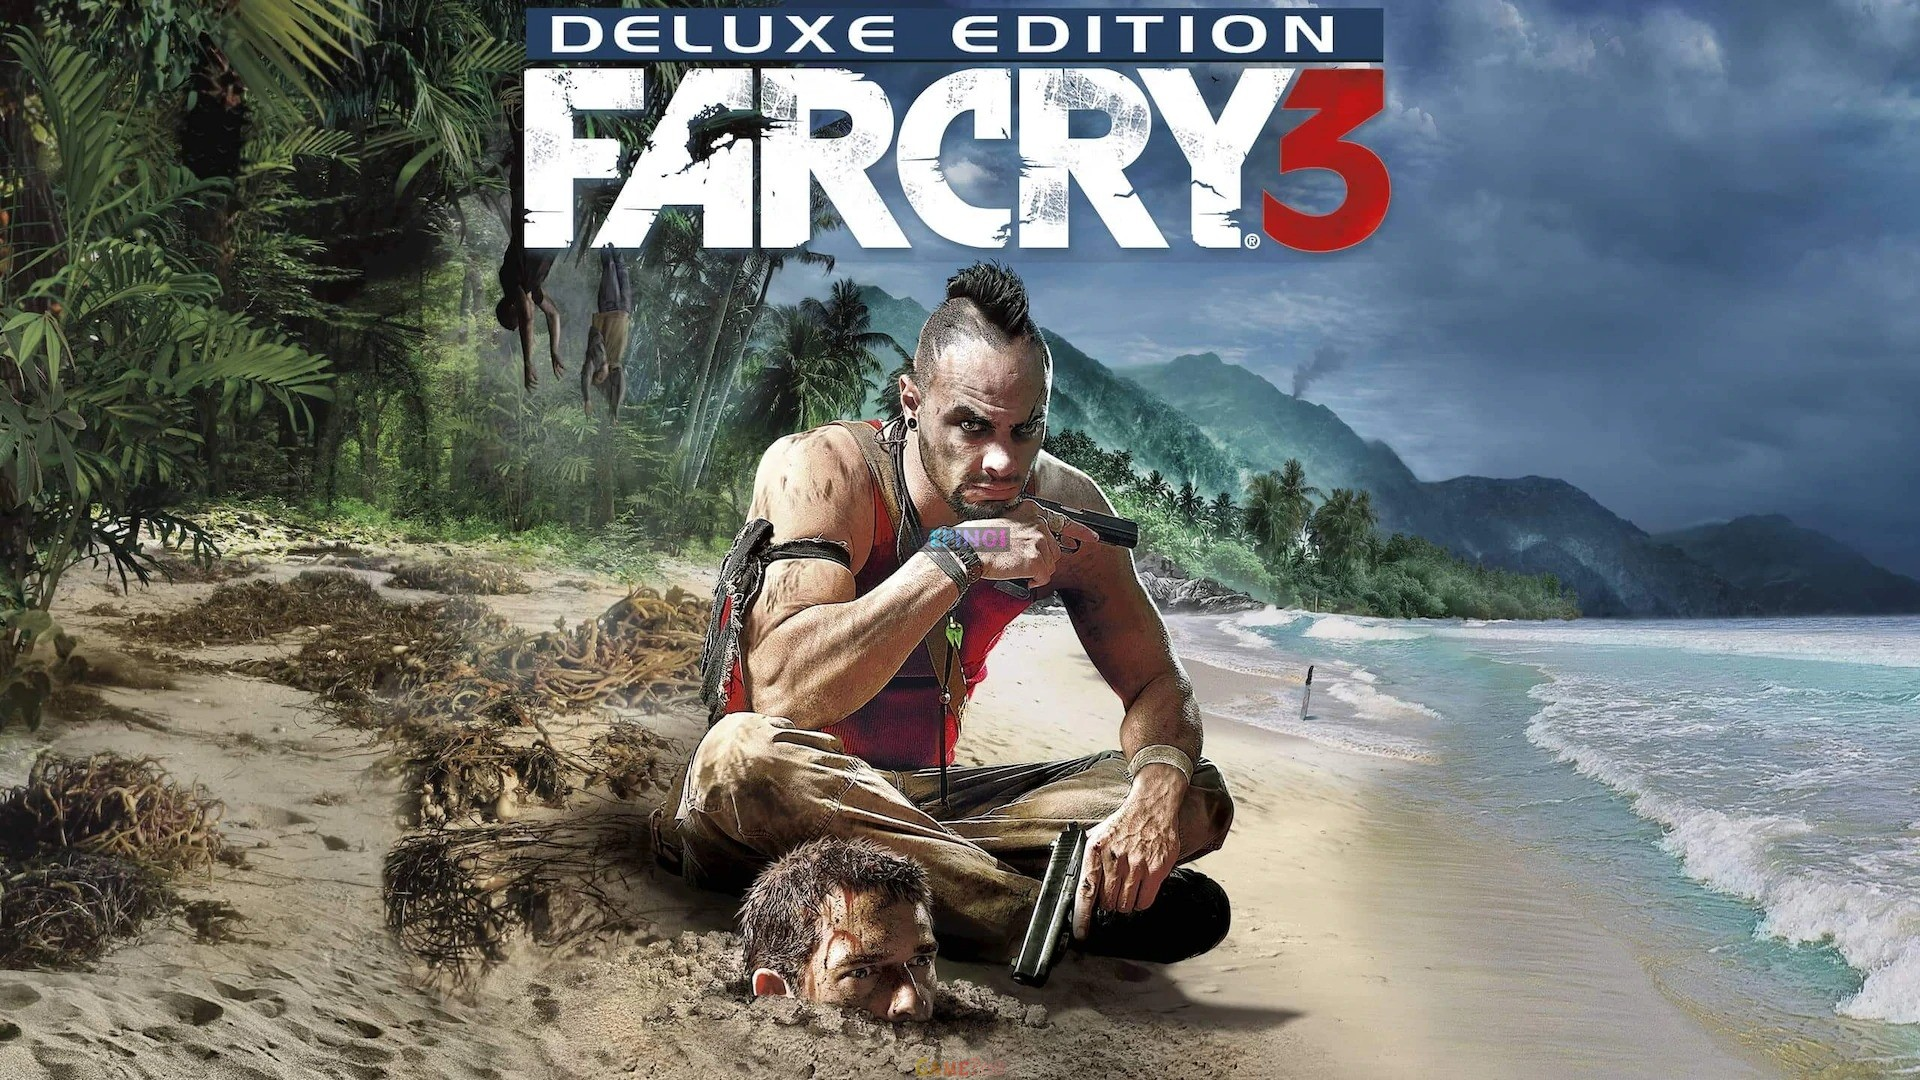 FAR CRY 3 Xbox Game Full Edition Free Download